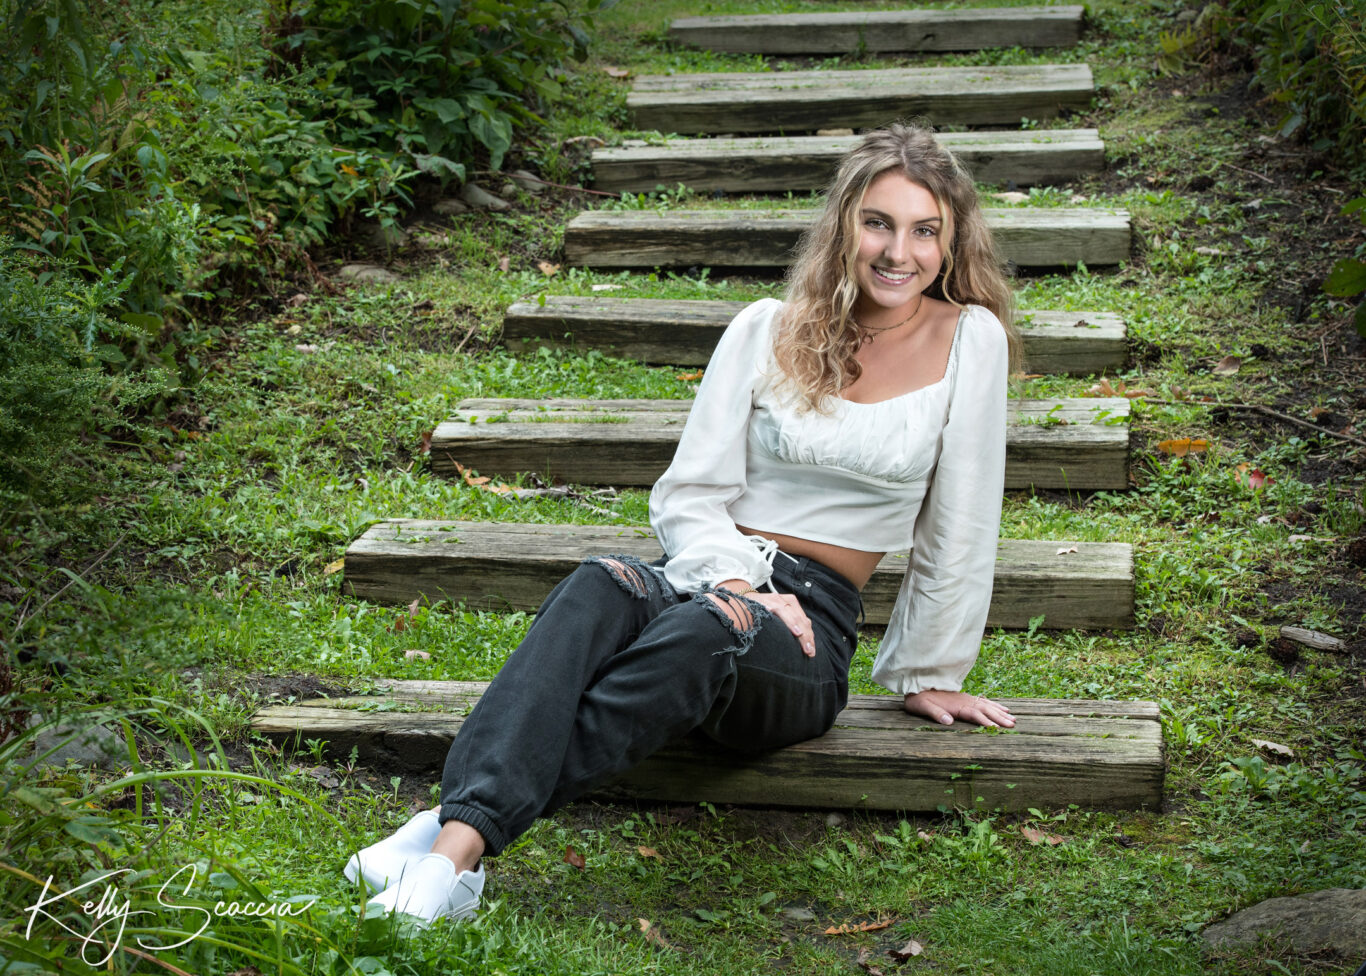 Senior girl outdoor portrait with long blonde hair, brown eyes looking at you wearing a cream shirt, black jeans smiling sitting on wood steps